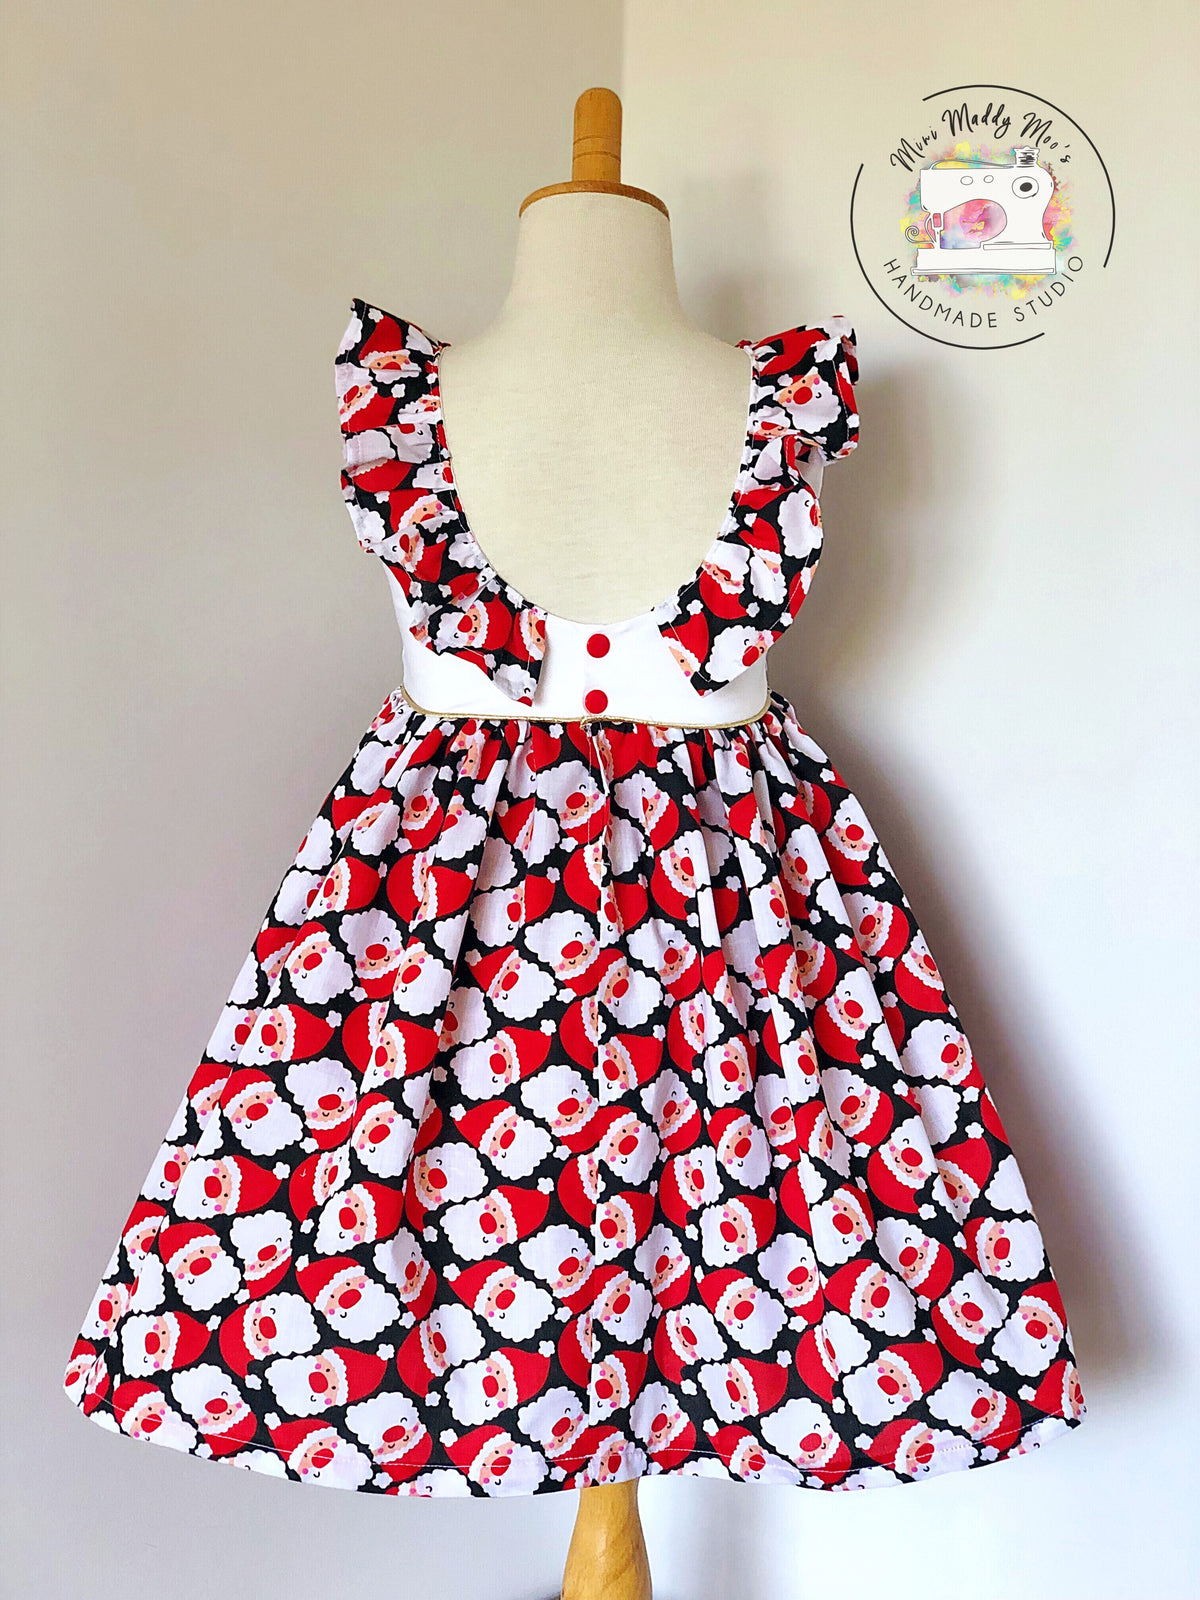 Christmas Tea Party Dress - Mini Maddy Moo's